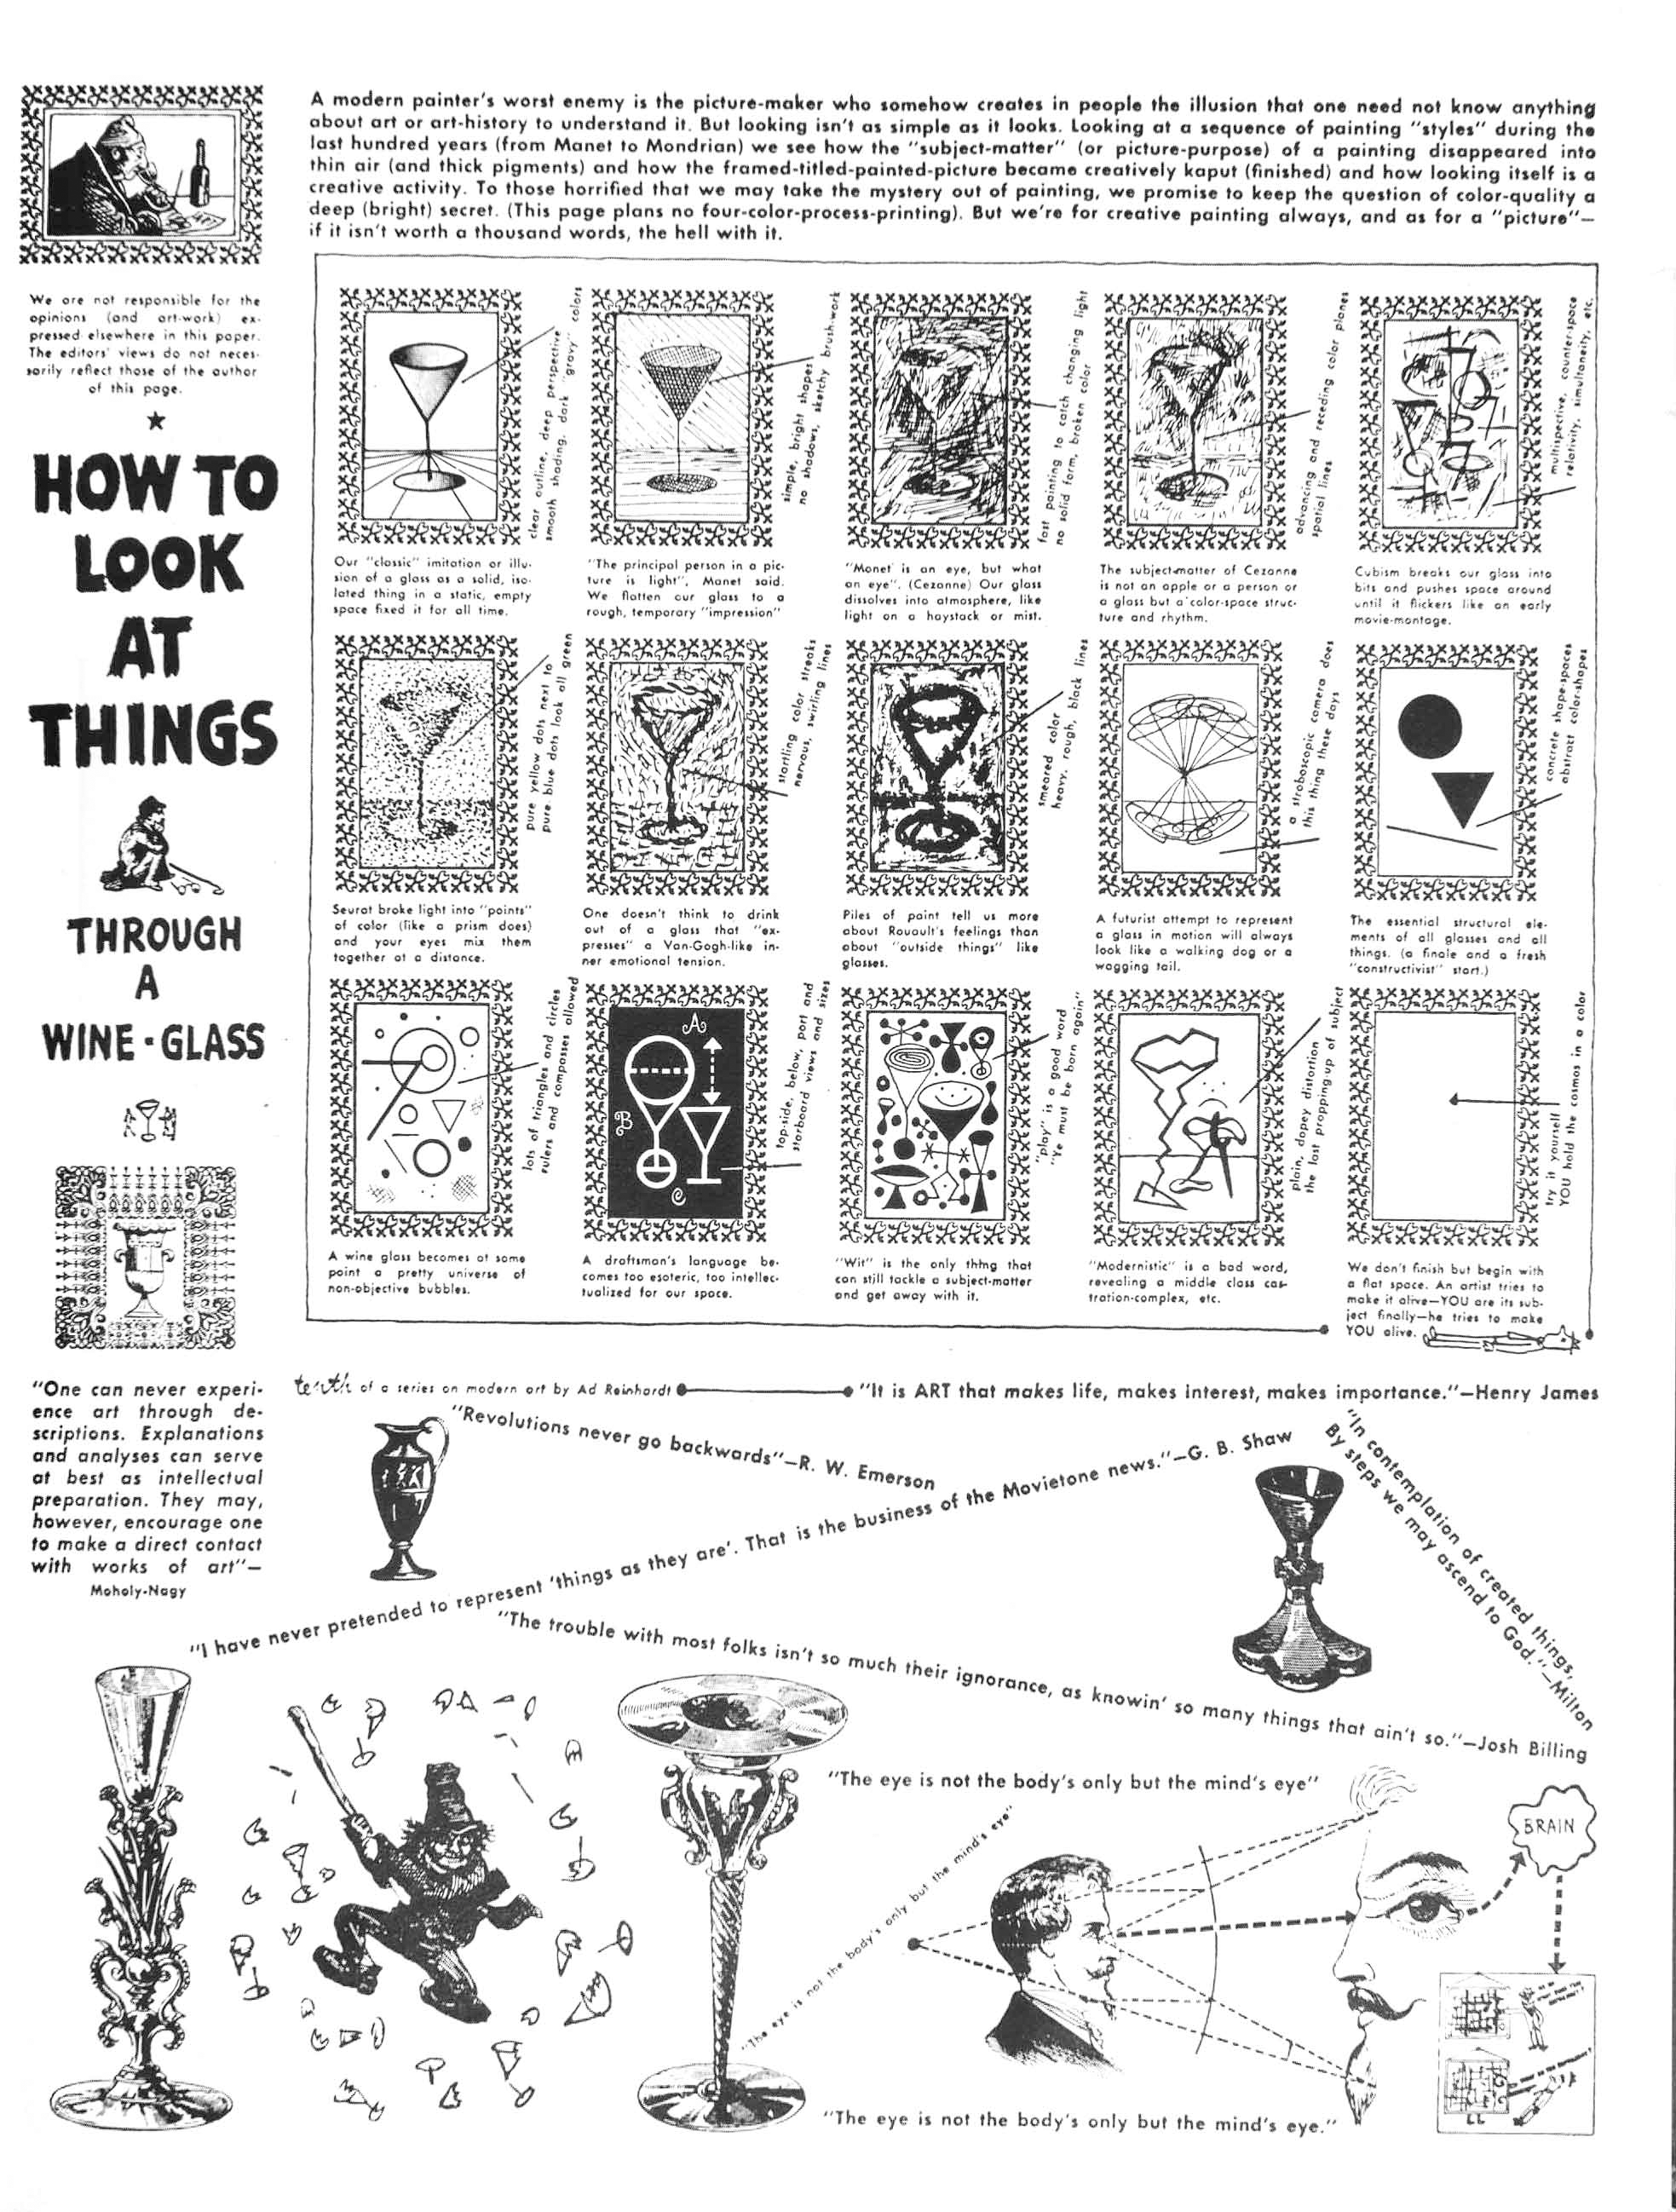 ad reinhardt,How to Look at Things through a Wine-Glass,1946, spencer museum of art, lawrence, kansas